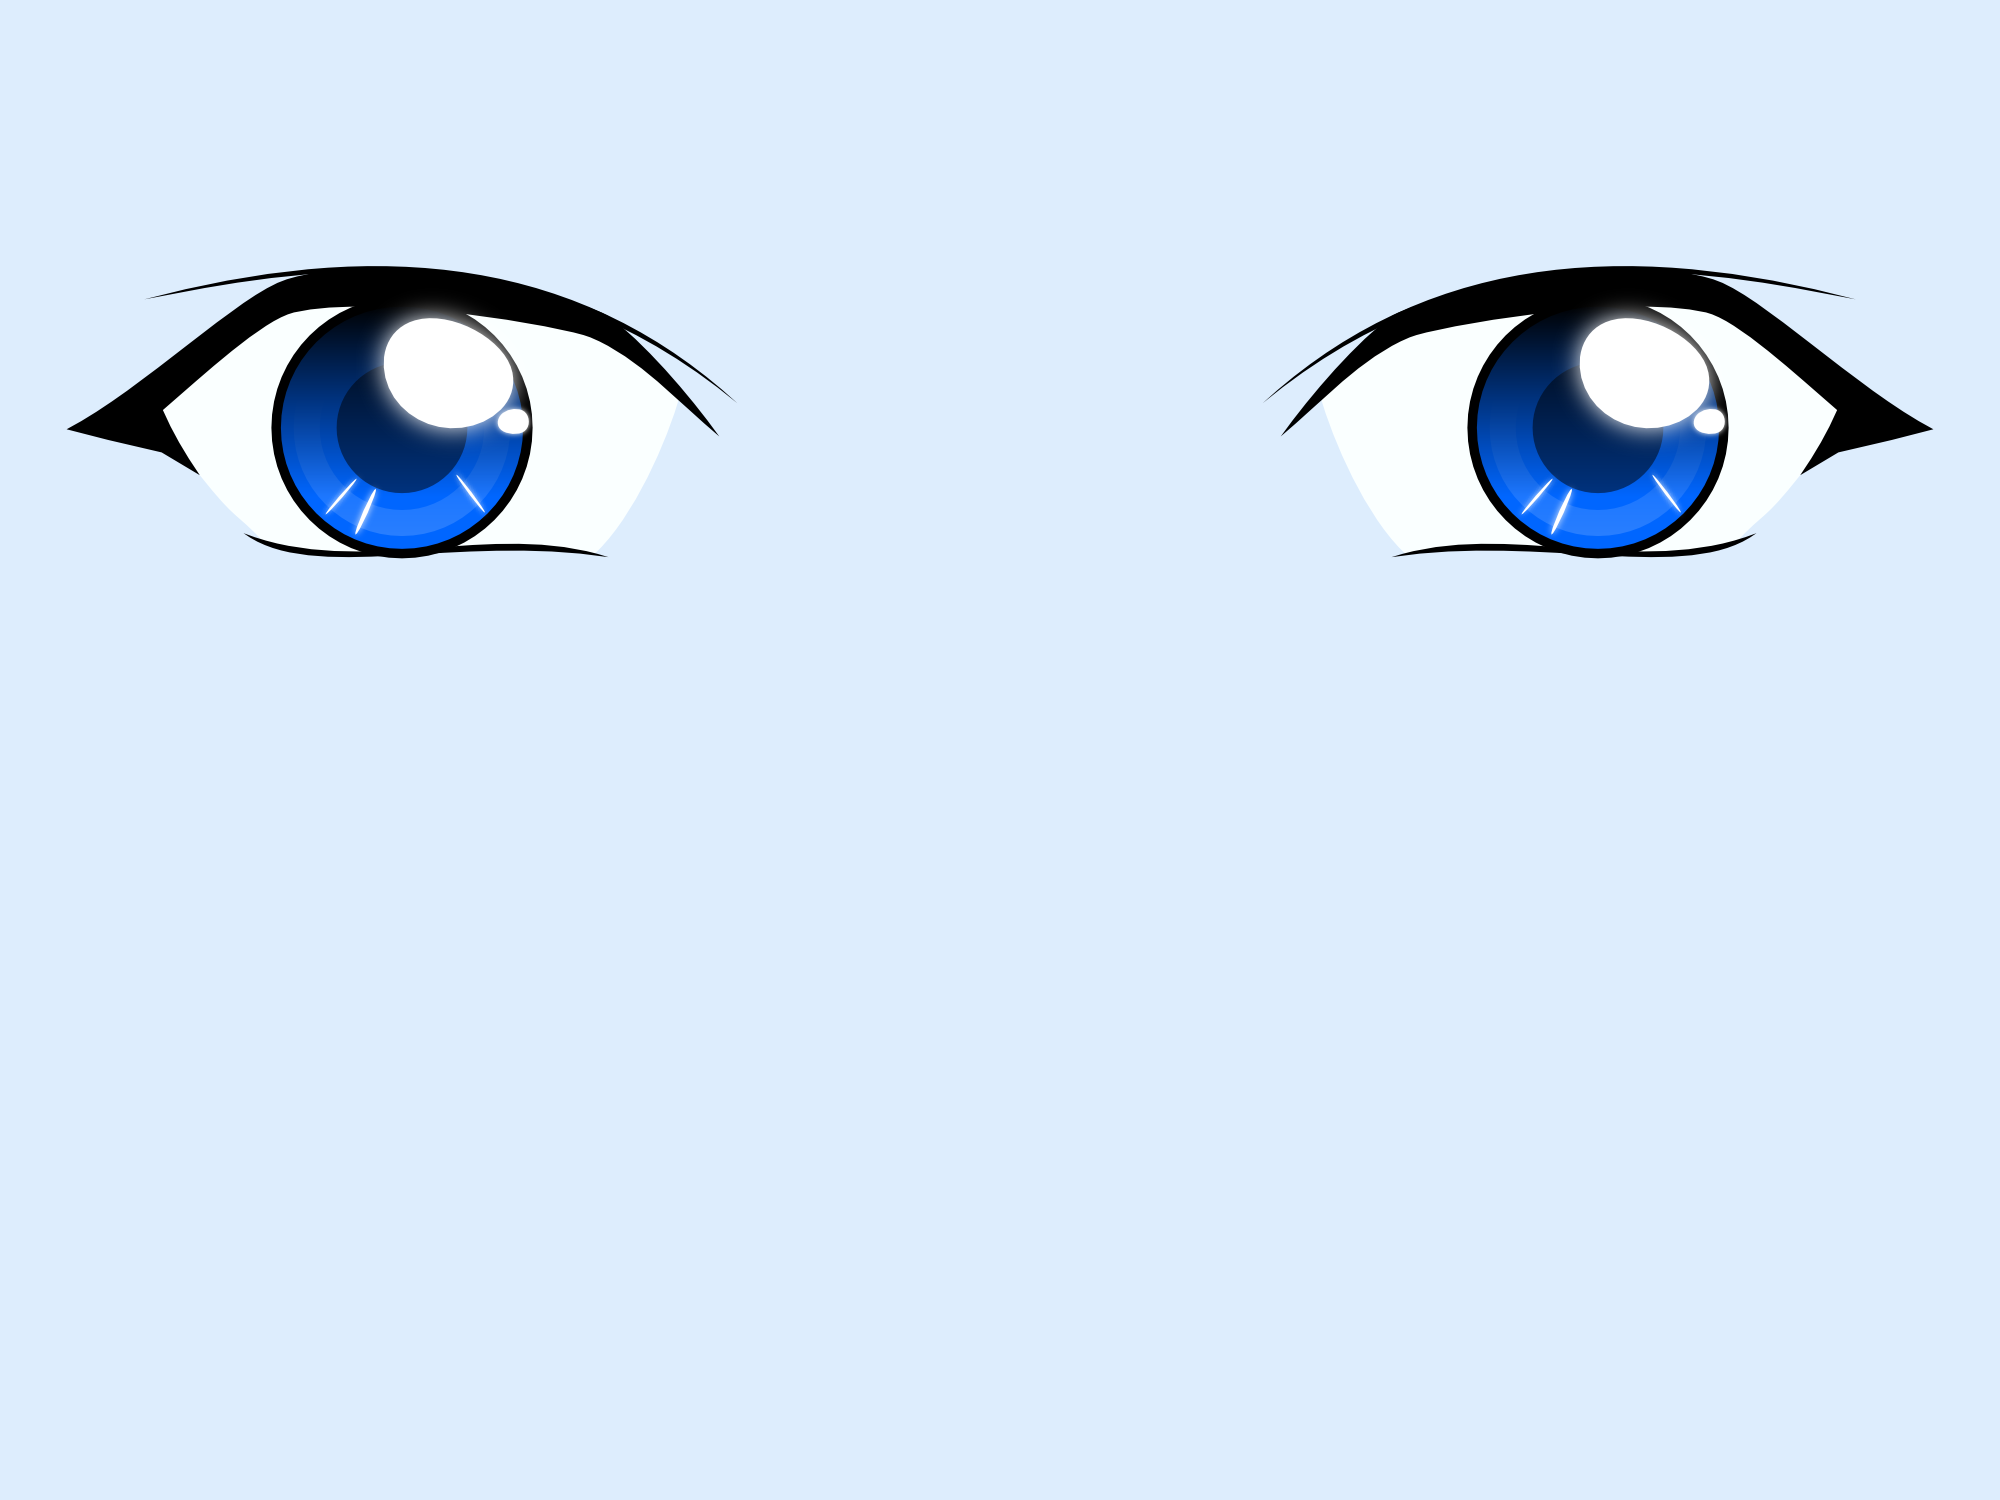 Ojos anime vector by ike2 on DeviantArt